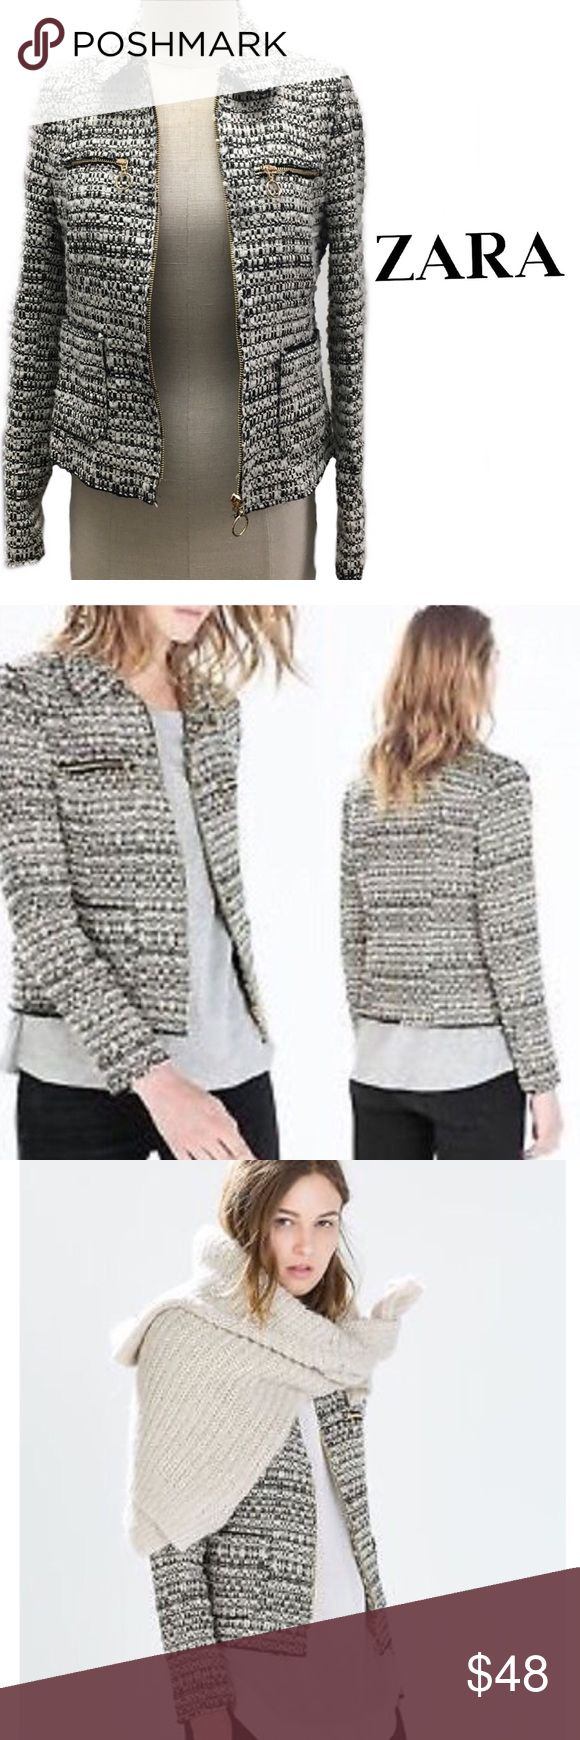 Zara Black and White Tweeted Blaze/Jacket Size XS Stunning New with tags 100% authentic ZARA BLACK AND SILVER TWEED BLAZER CROPPED STYLE THAT IS COMPLETELY SOLD OUT EVERYWHERE, IT'S LIGHT ENOUGH FOR LAYERING. DON'T MISS OUT ON THE HOTTEST JACKET OF THE SEASON AS IT WON'T LAST AS THIS RATE! SEEN ON UK STAR AND OTHER CELEBRITIES/BLOGGERS ITS AMAZING!! TIES ZIPPER Zara Jackets & Coats Blazers